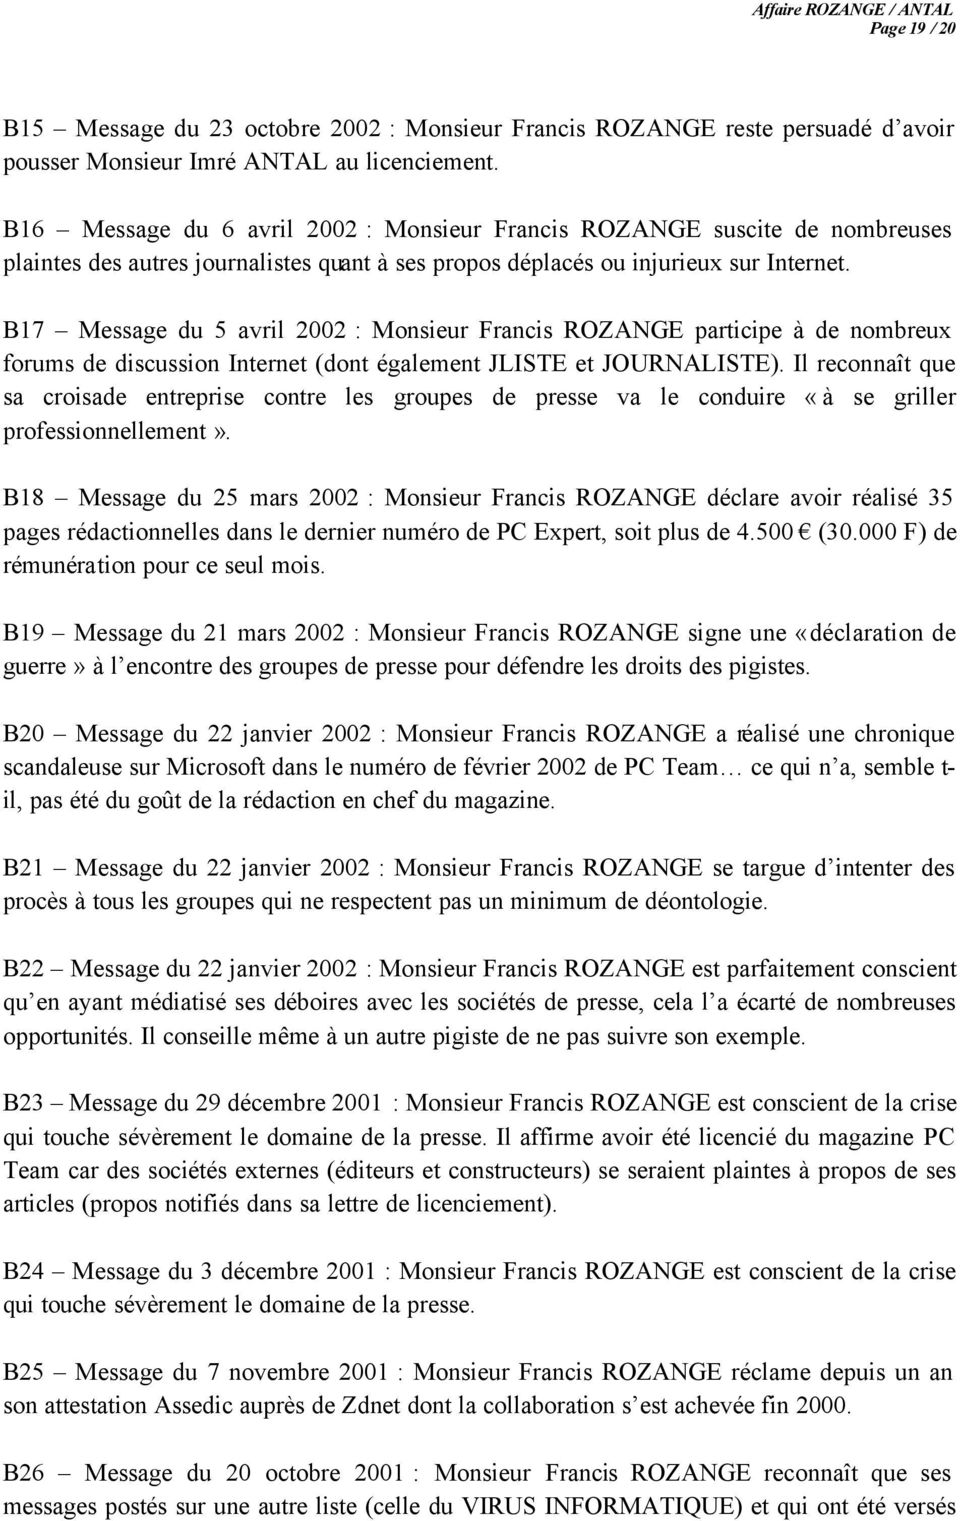 B17 Message du 5 avril 2002 : Monsieur Francis ROZANGE participe à de nombreux forums de discussion Internet (dont également JLISTE et JOURNALISTE).